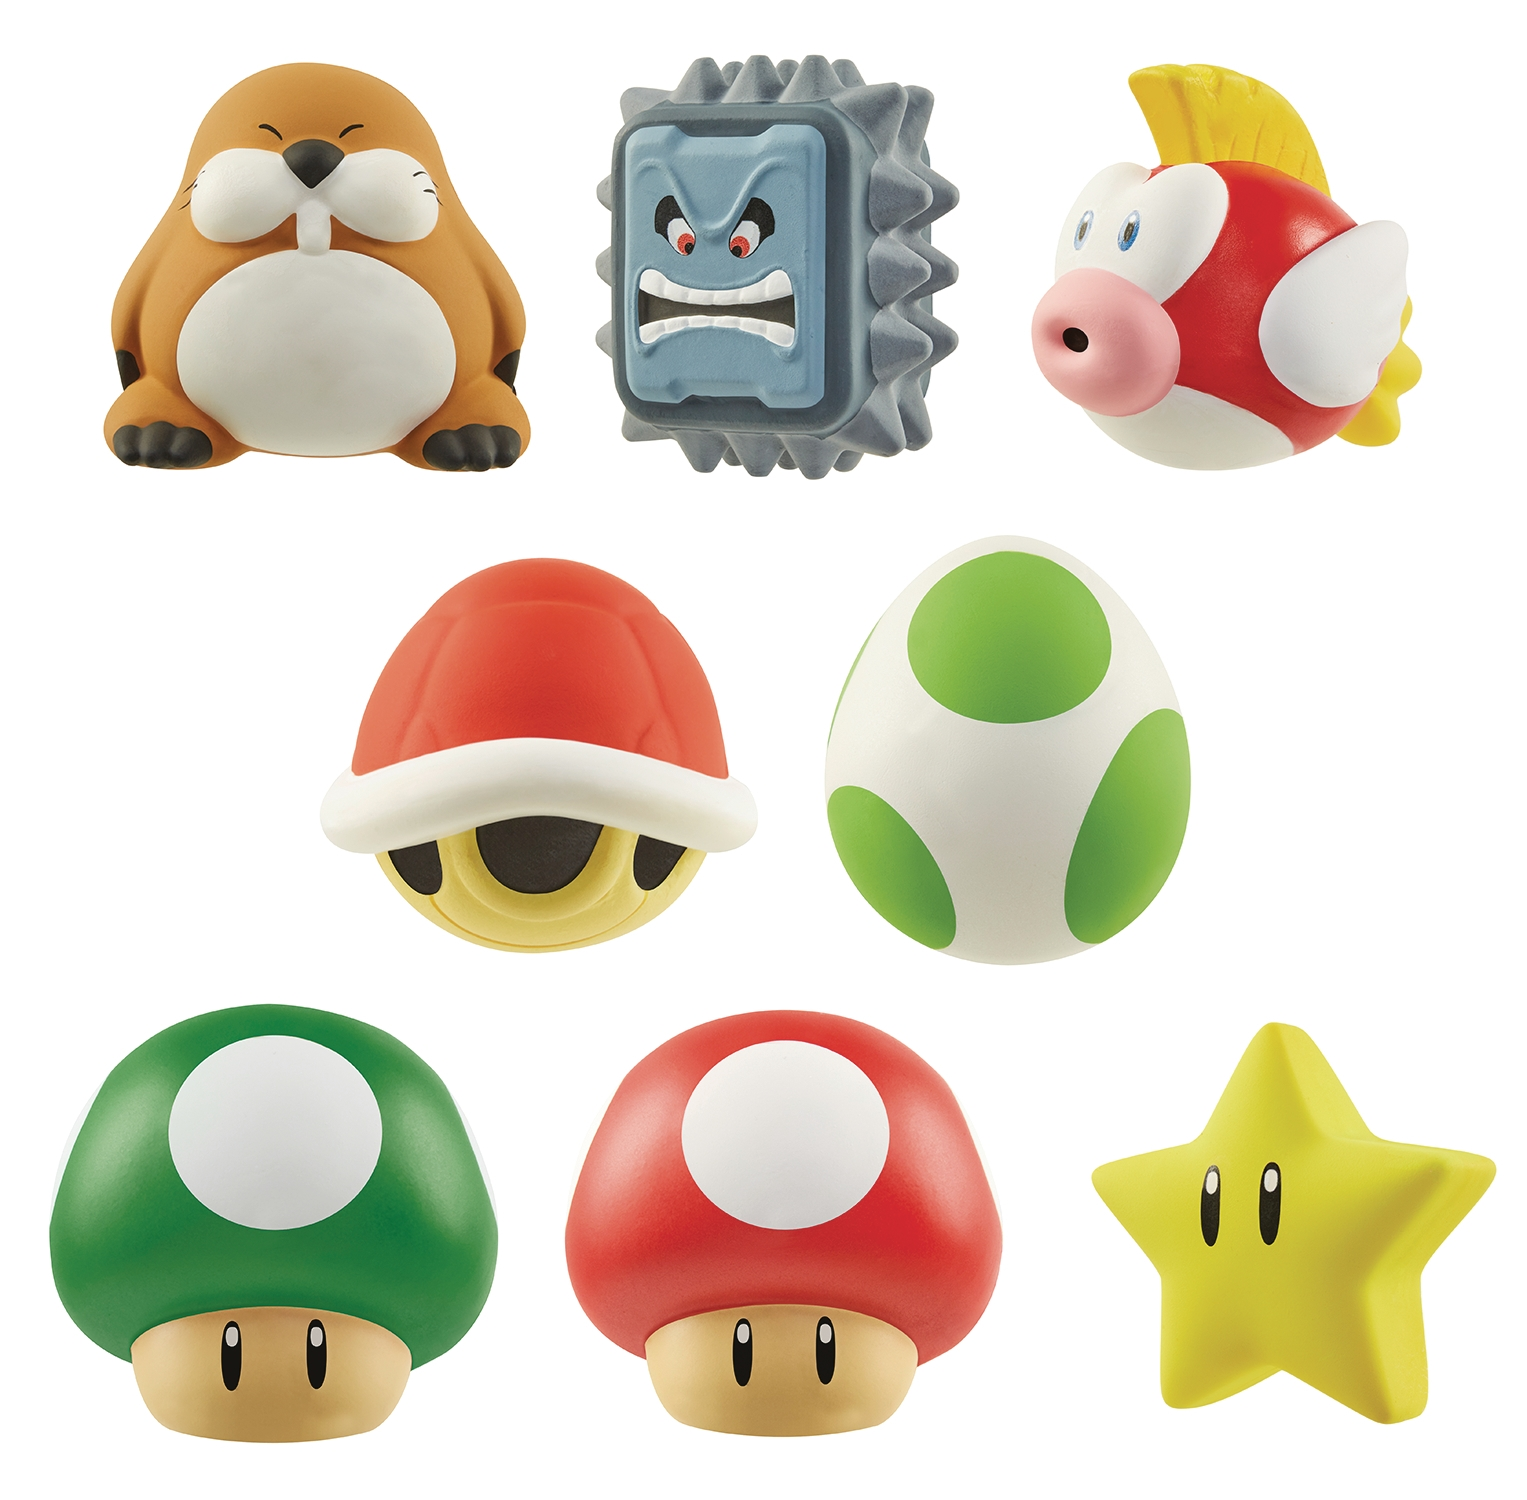 World of Nintendo Squish Toy